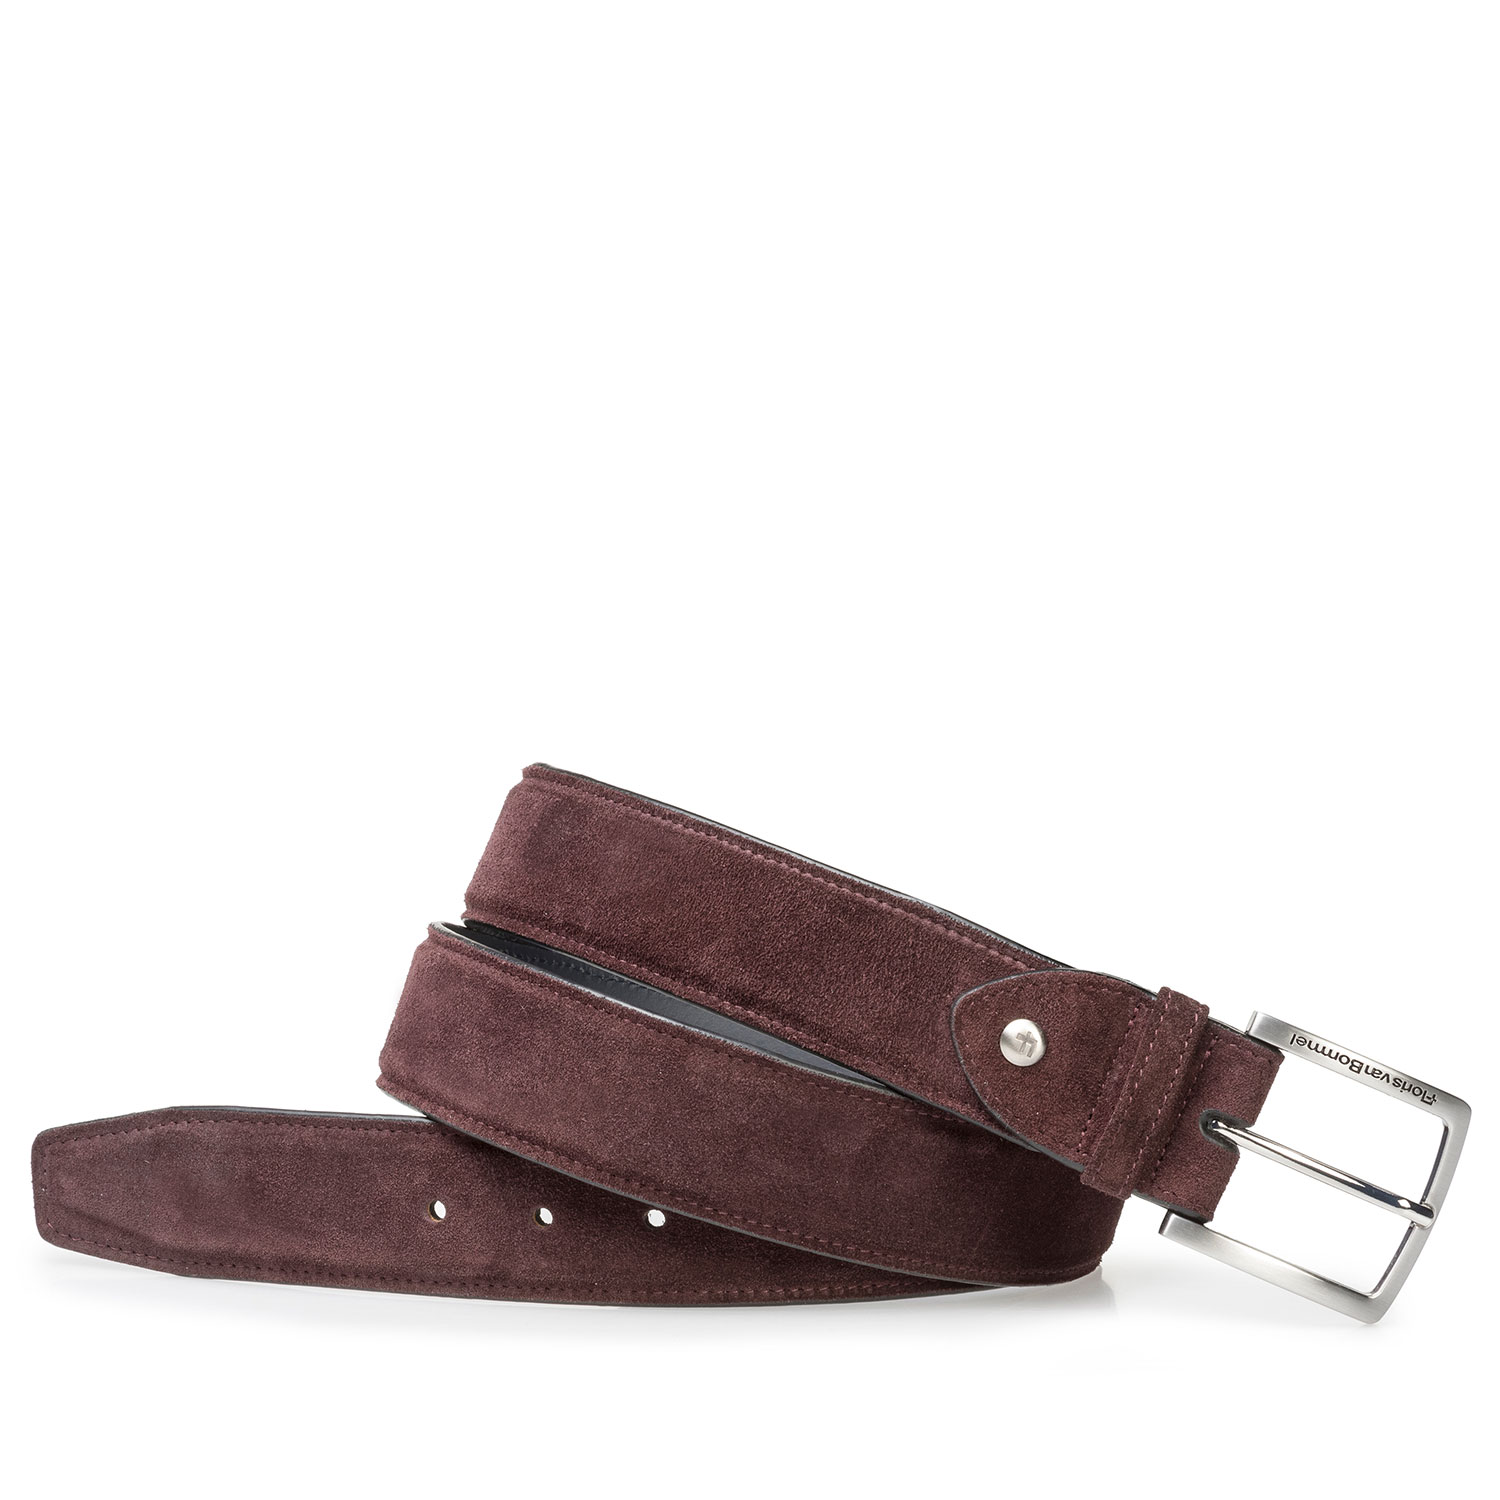 75202/05 - Ruby red suede leather belt